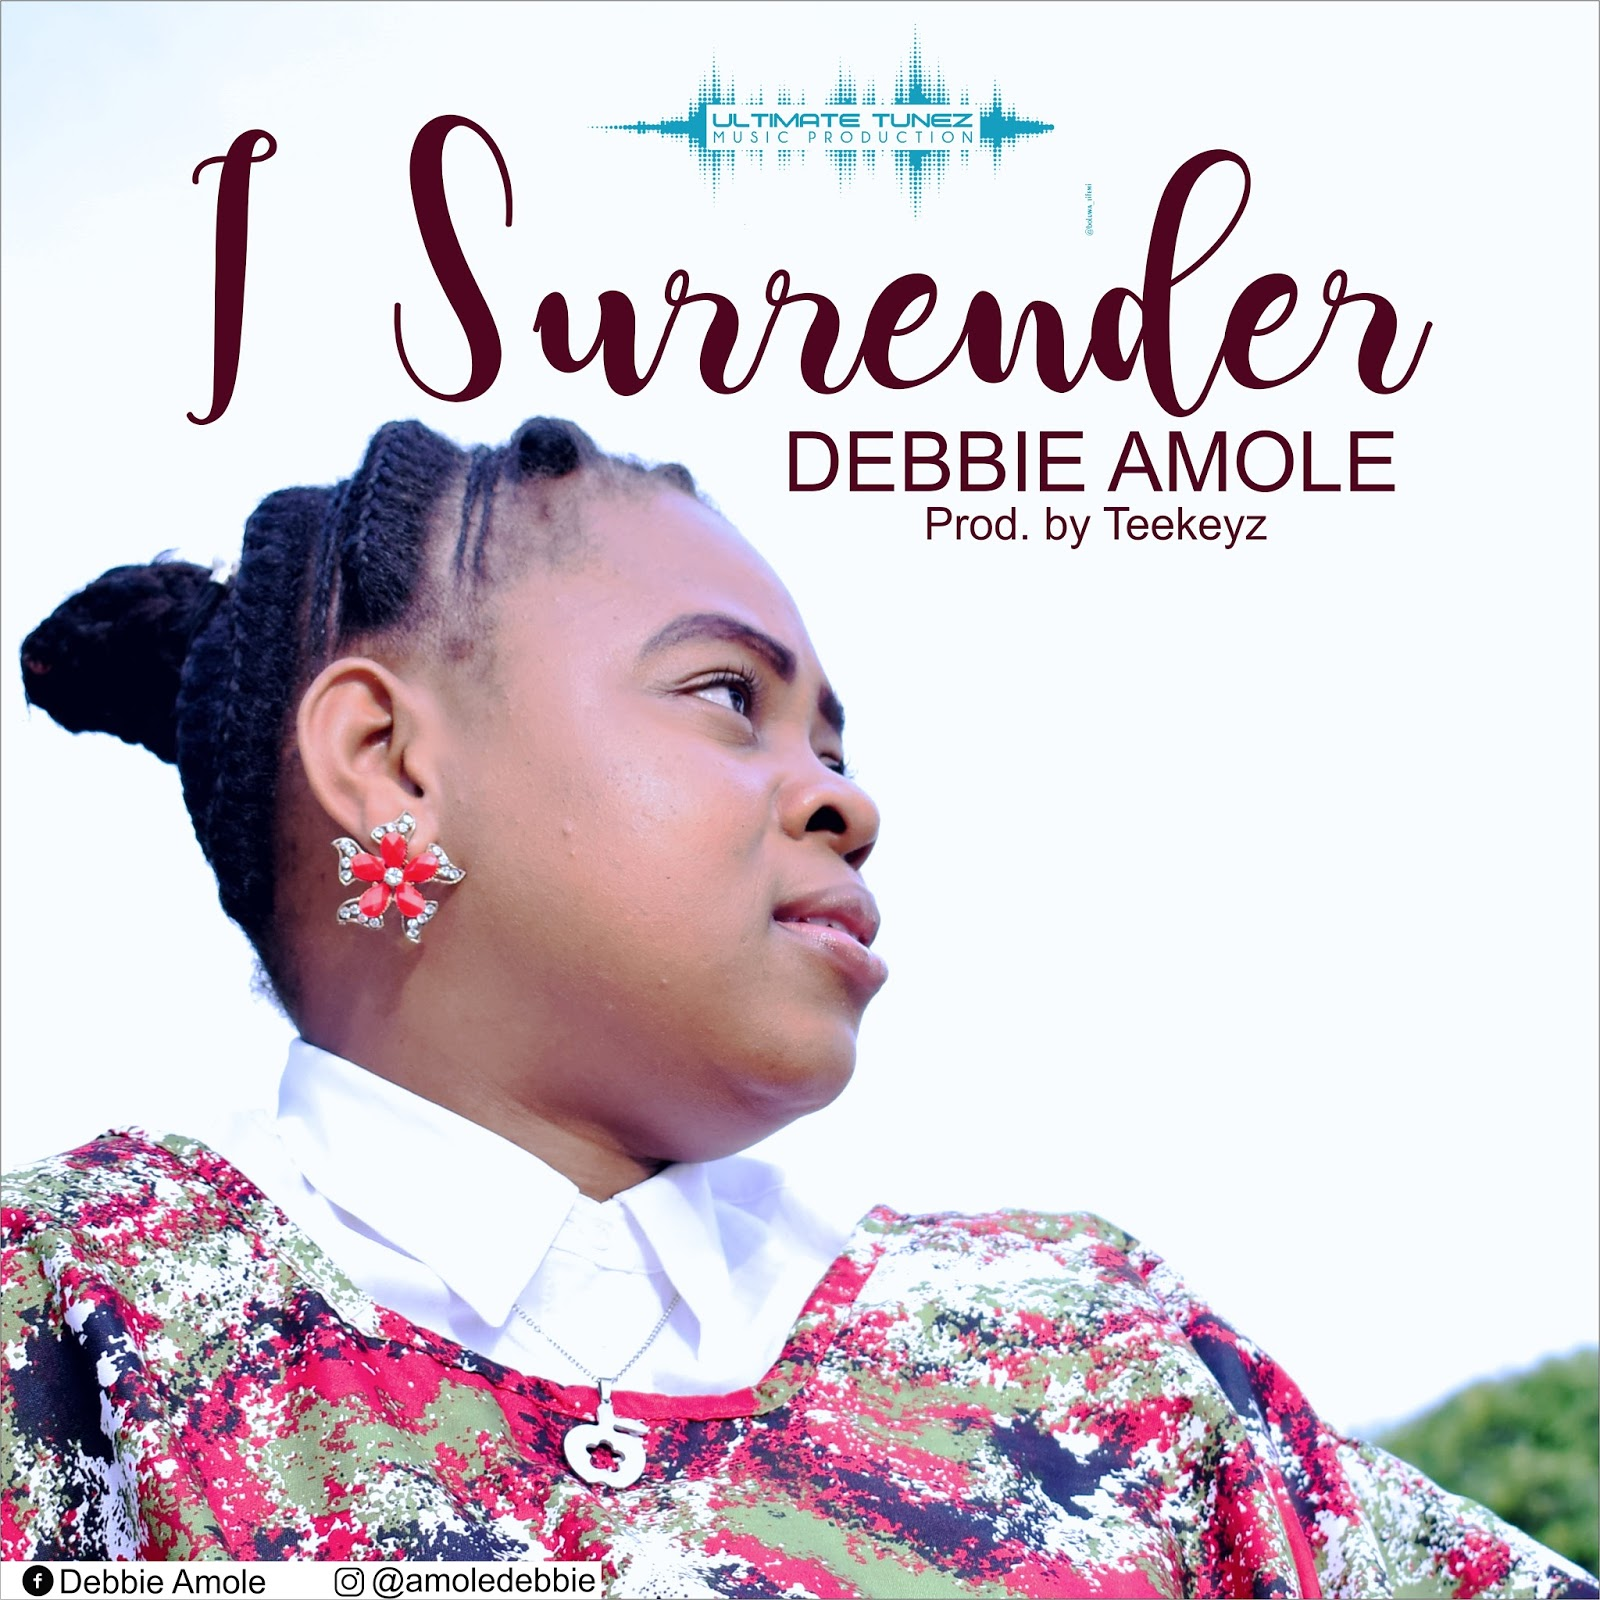 I Surrender by Debbie Amole. Songs download. Gospel Redefined